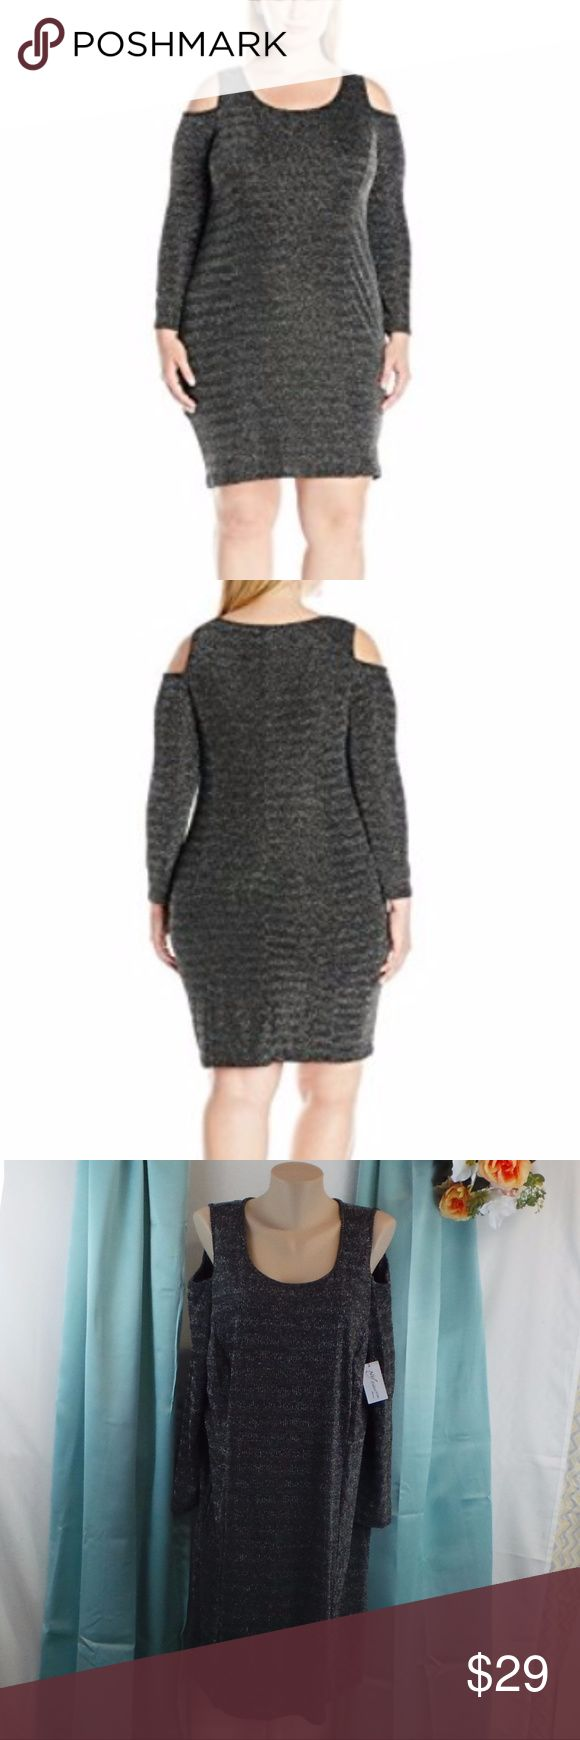 Long Sleeve Cold Shoulder Lurex Dress Metallic NWT Fitted cold shoulder sheath dress - silver metallic NWT Size 3X 100% Polyester Imported Machine Wash Solid long sleeve cold shoulder lurex dress Great for the work place, a night out, and even every day wear  704974172816 AD6 NY Collection Dresses Mini